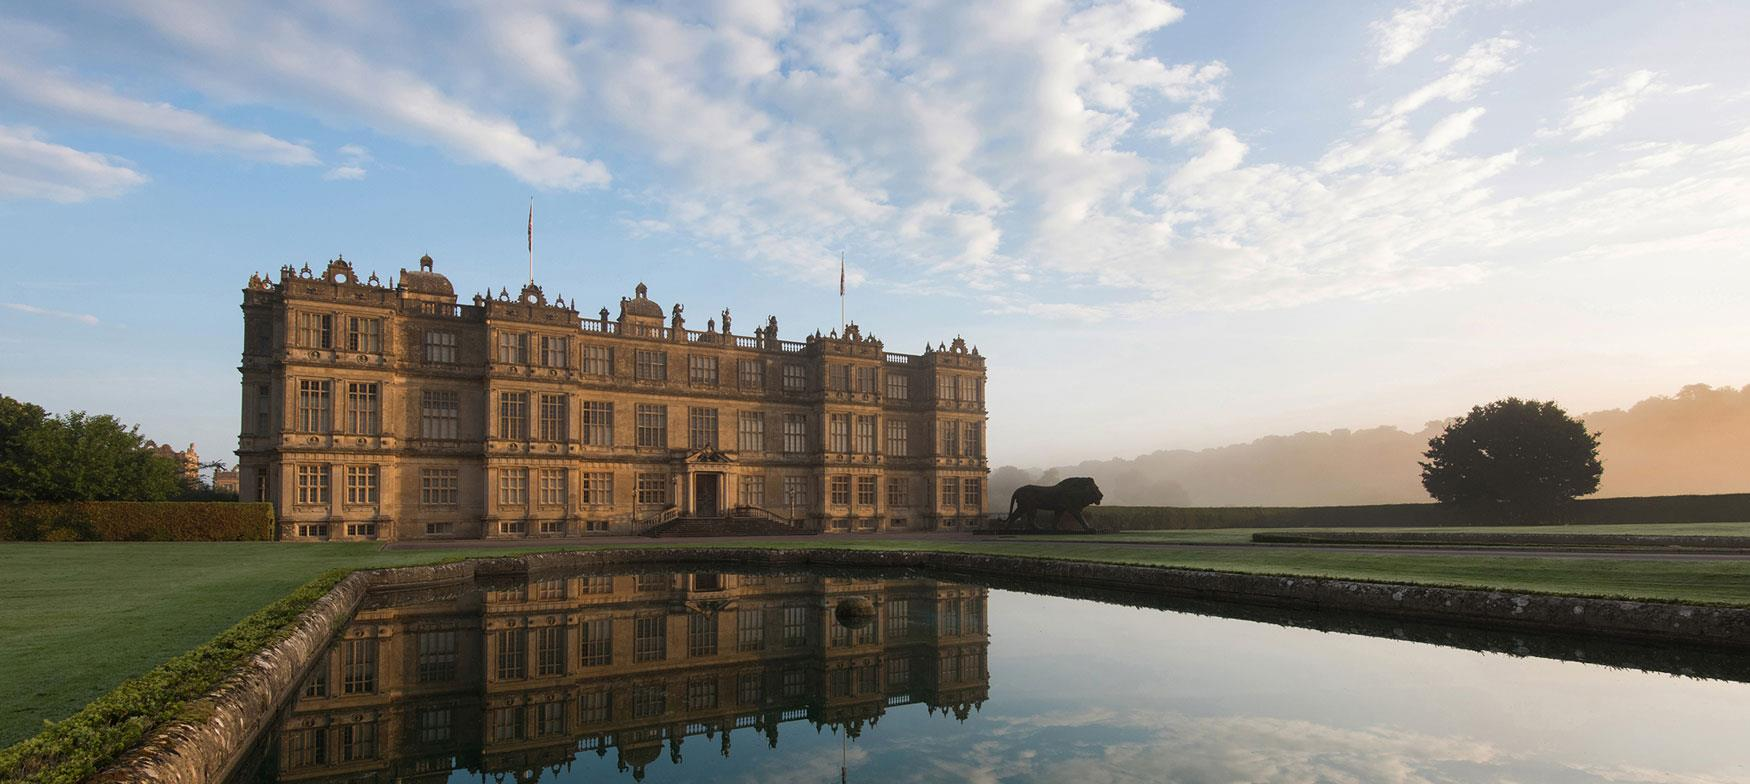 Discover How The Other Half Lived at Longleat